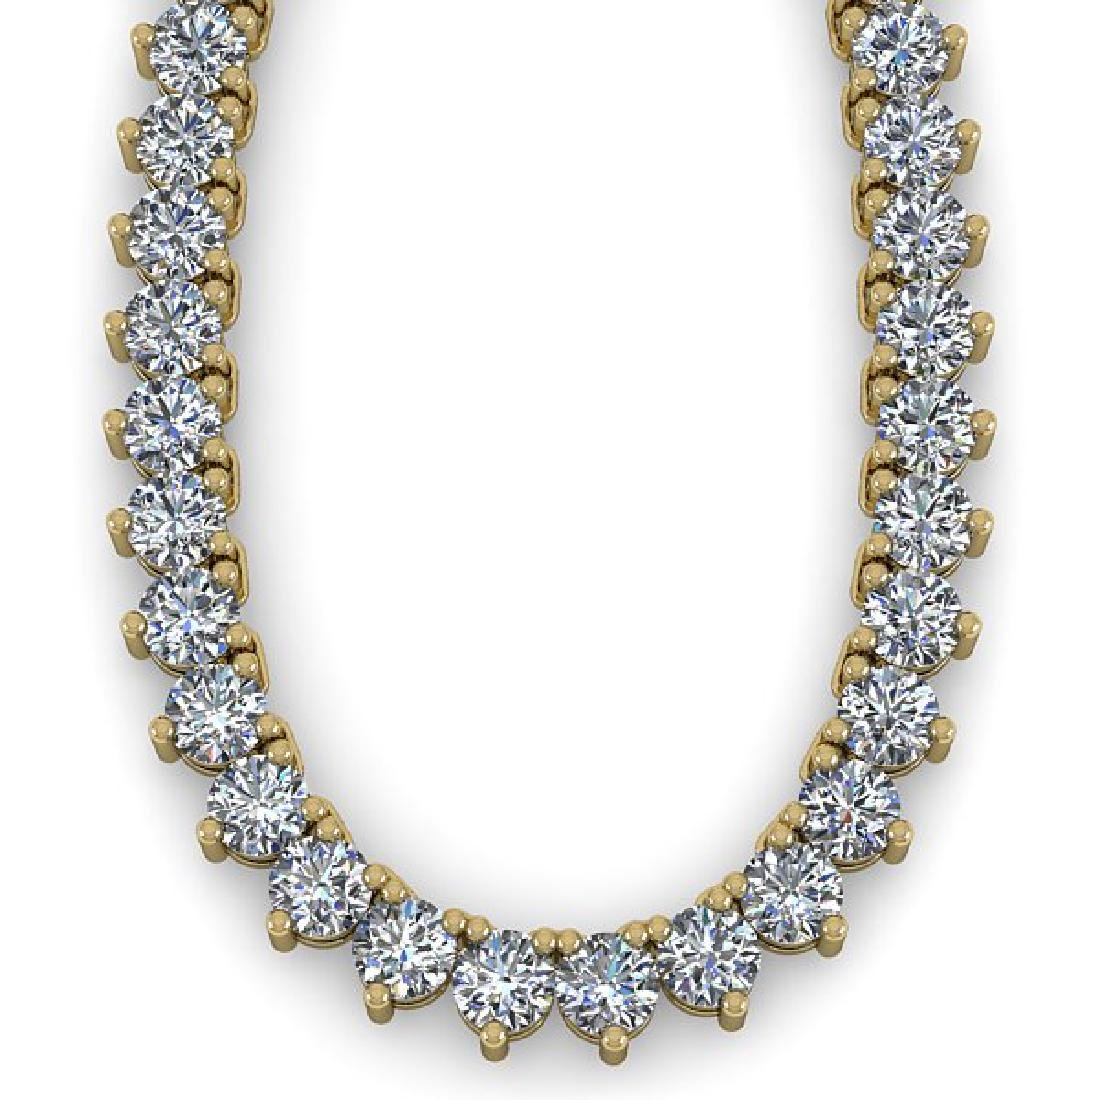 57 CTW Solitaire Certified SI Diamond Necklace 14K